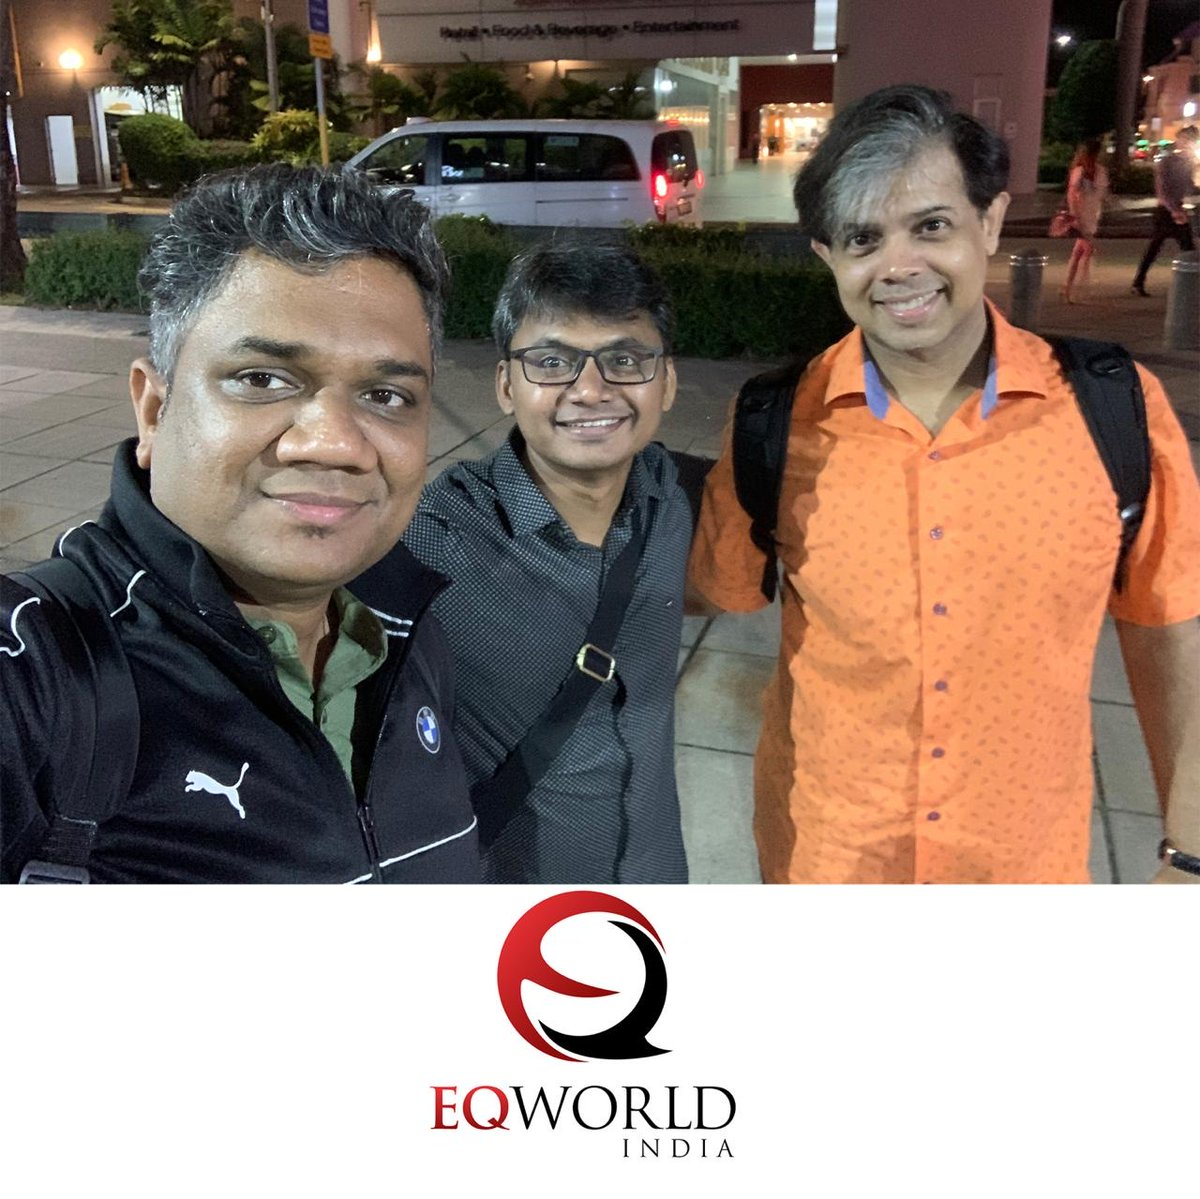 Friendship, trust & purpose brought us together! Thank you Gran for mentoring us. Looking forward to the journey...  #friends #eqworldindia #EQWorld #EnneagramSpectrum #WEPSS #JeromeWagner #9PointsofView #Coaching #Personality #bff https://t.co/wnfOtYIfVJ